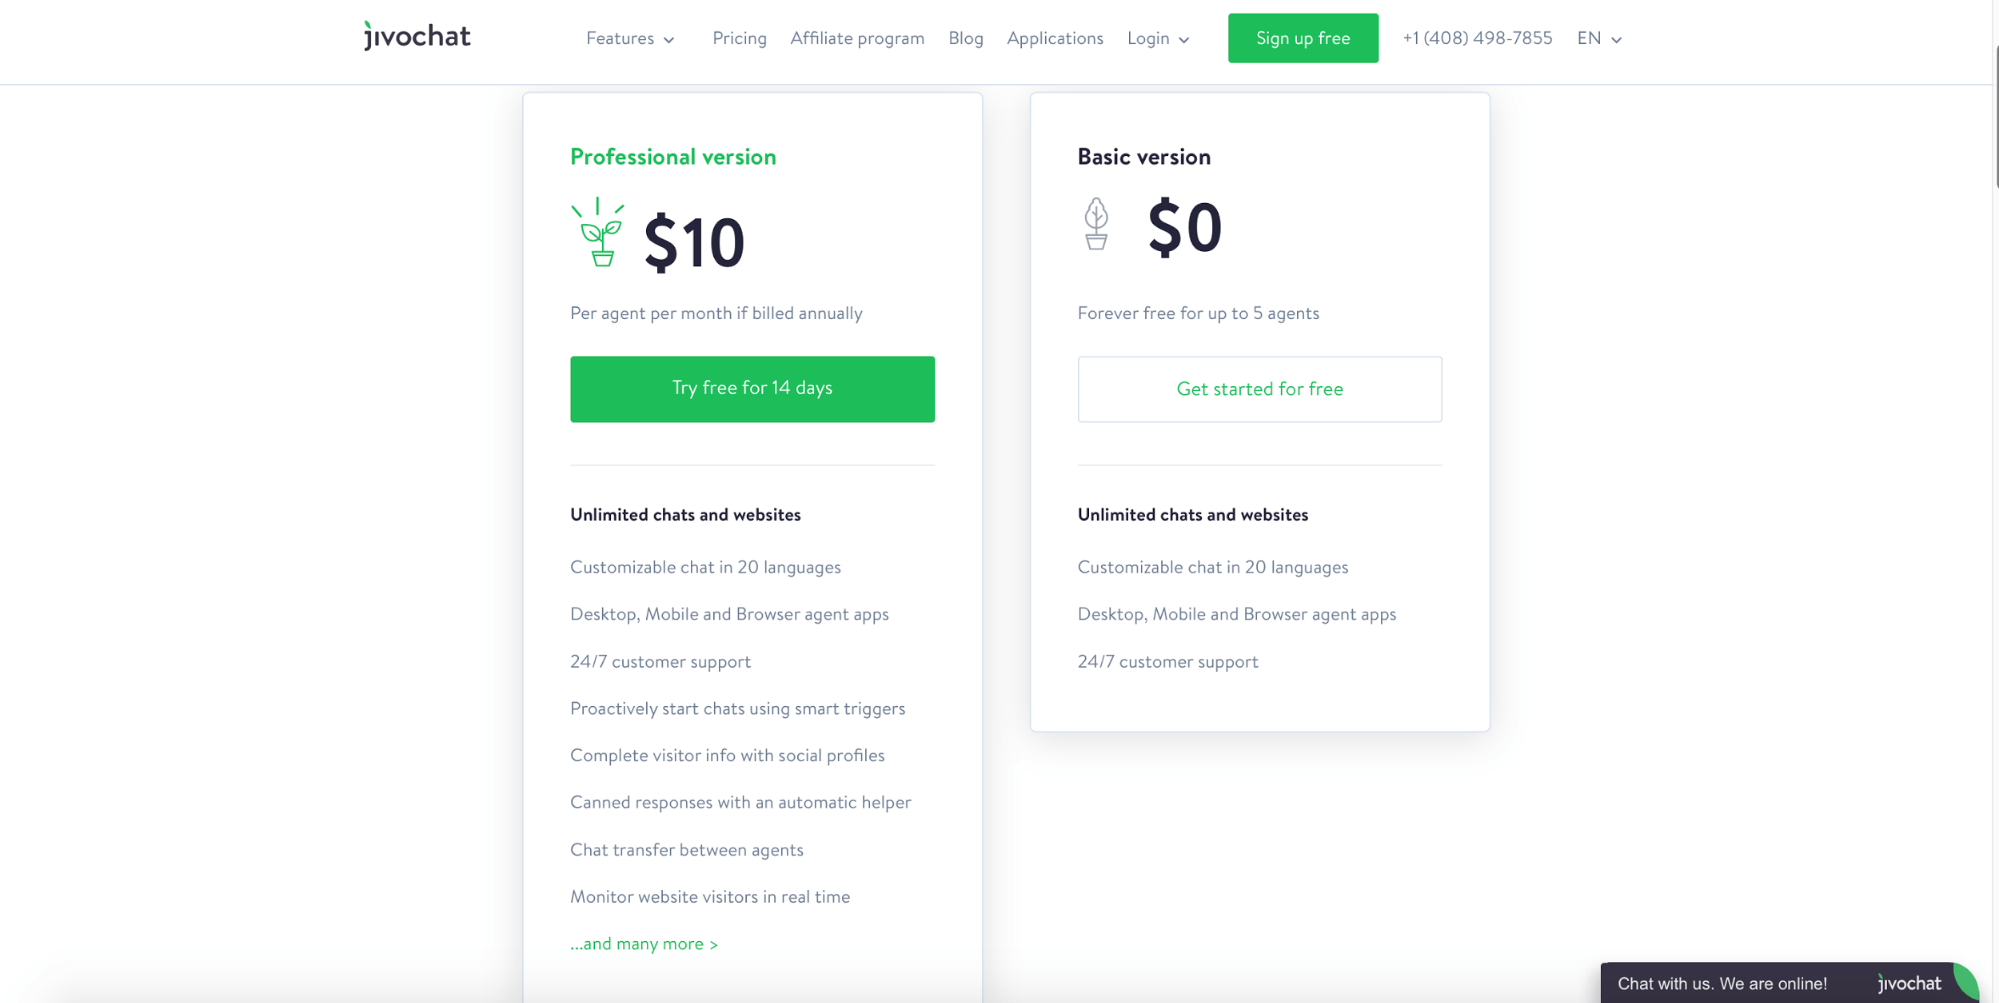 jivochat pricing page